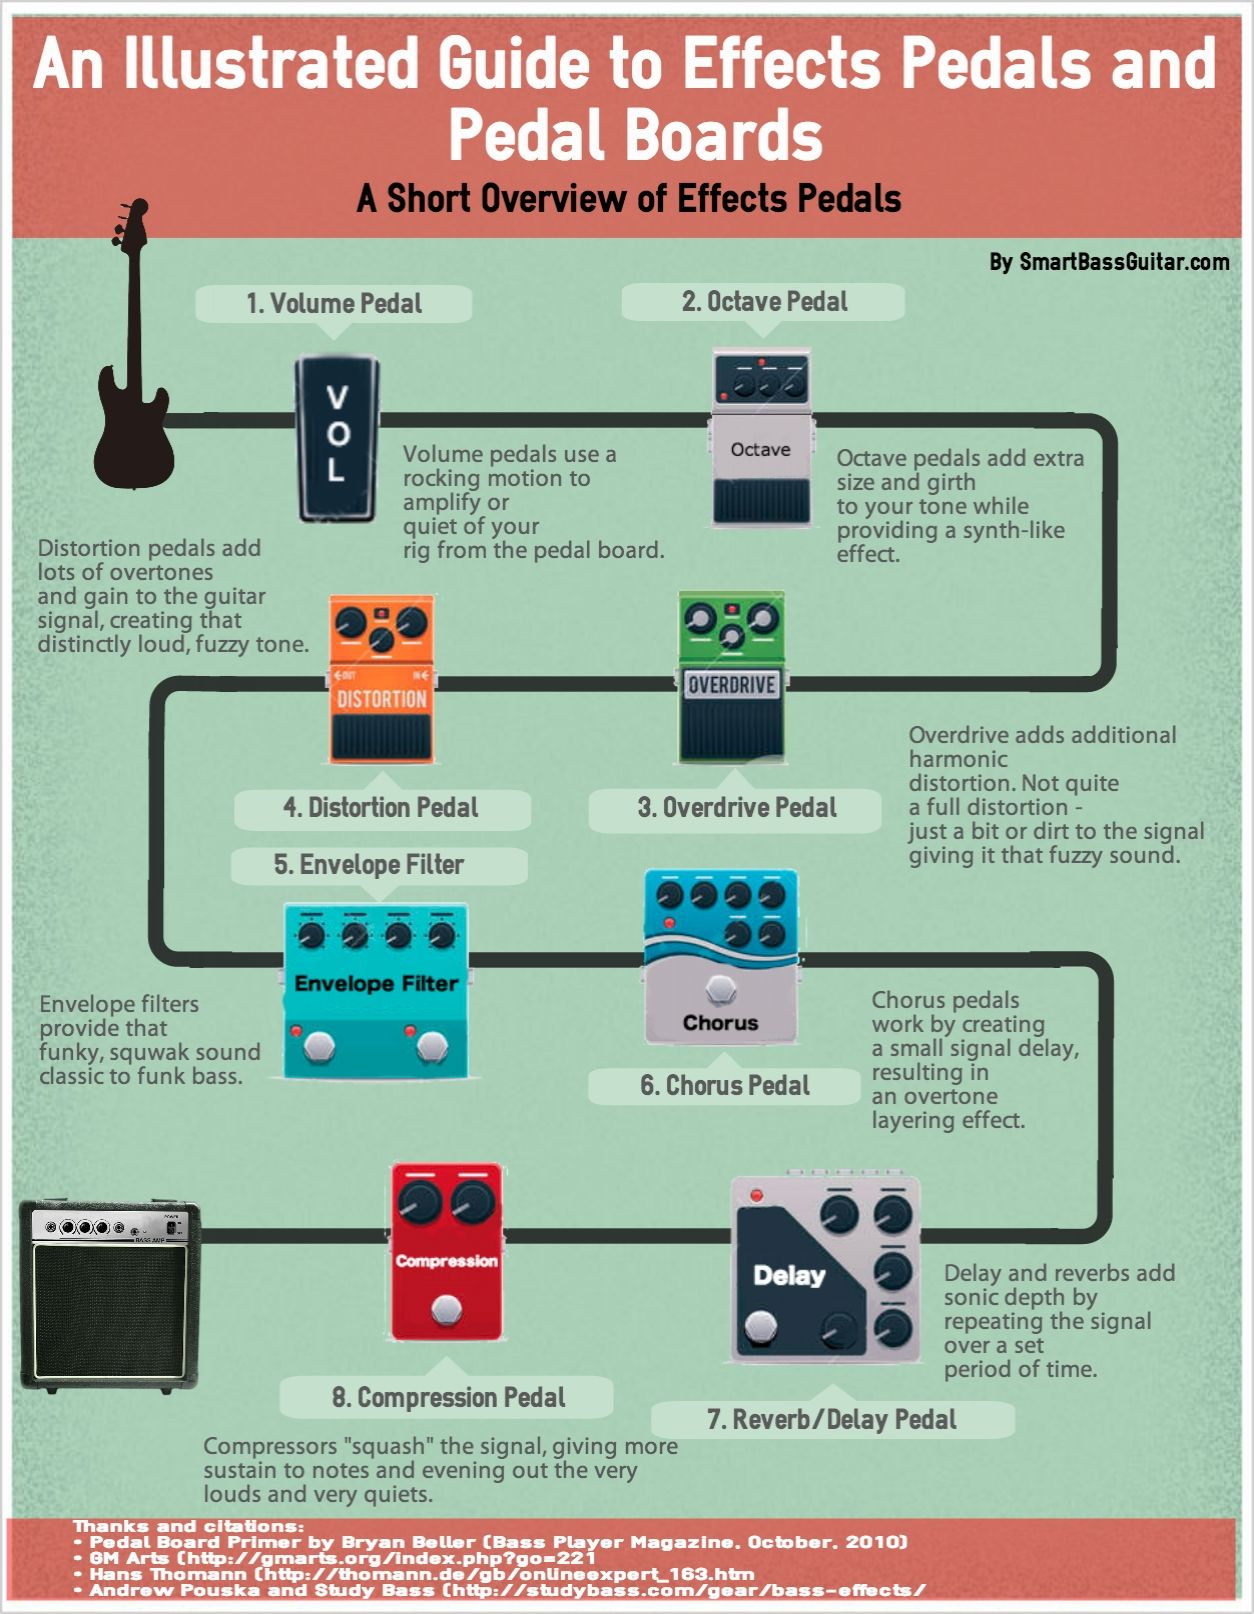 the best bass guitar effects pedals guide youll ever see infographic bass guitar guitar. Black Bedroom Furniture Sets. Home Design Ideas